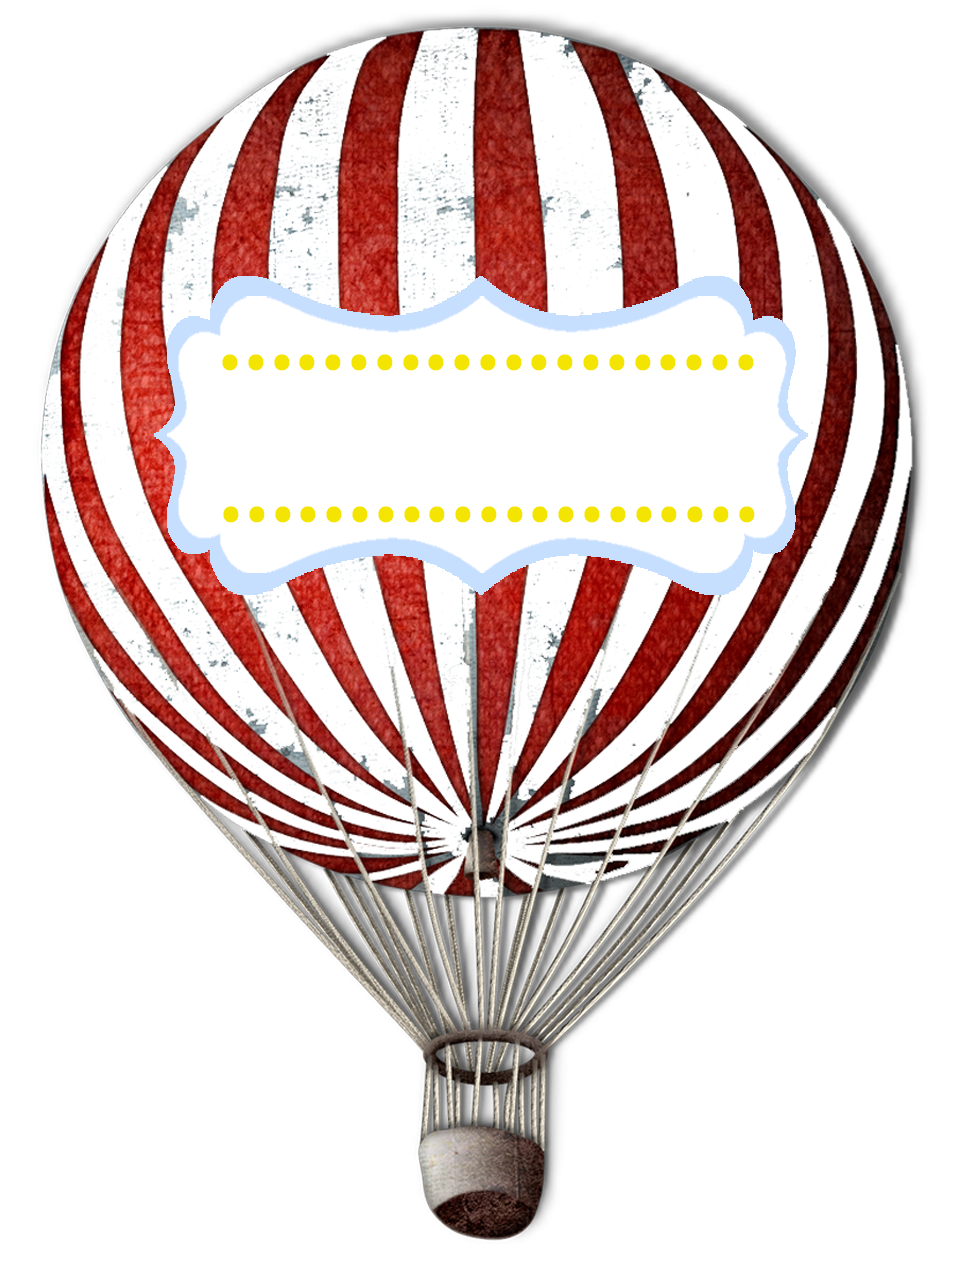 Satisfactory image with hot air balloon printable